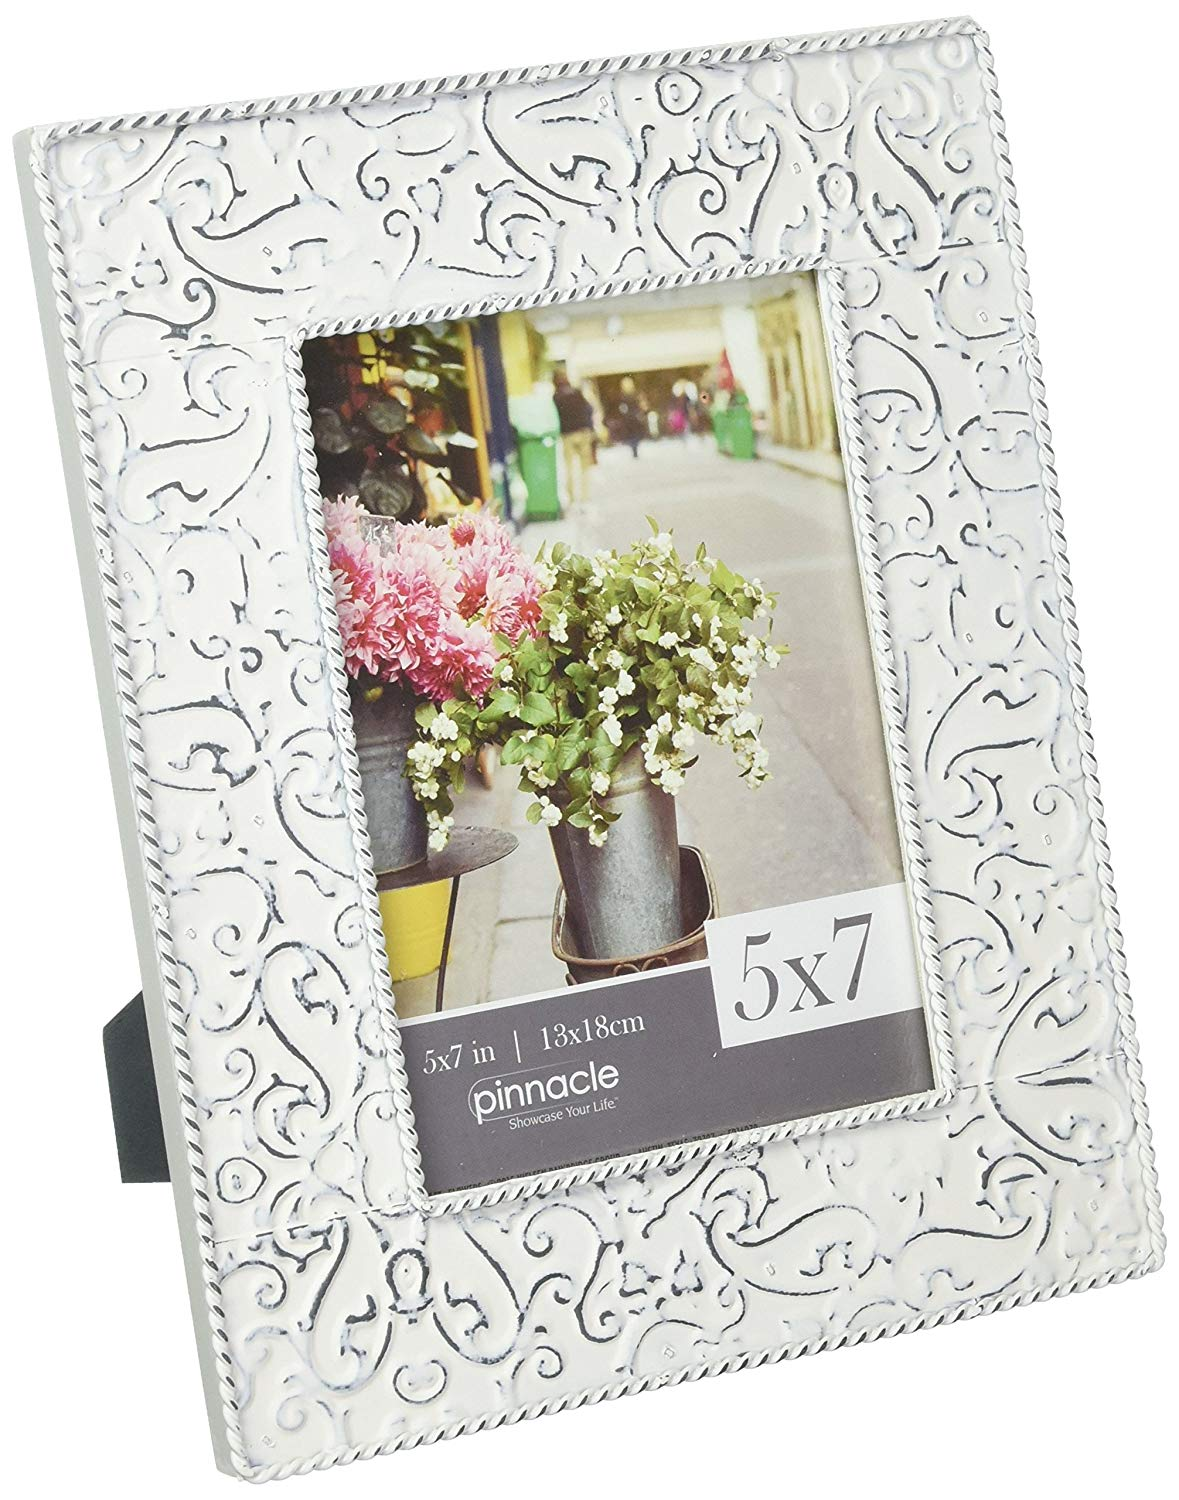 Pinnacle Frames and Accents 5X7 Embossed Metal Tin Distressed Tabletop Picture, White